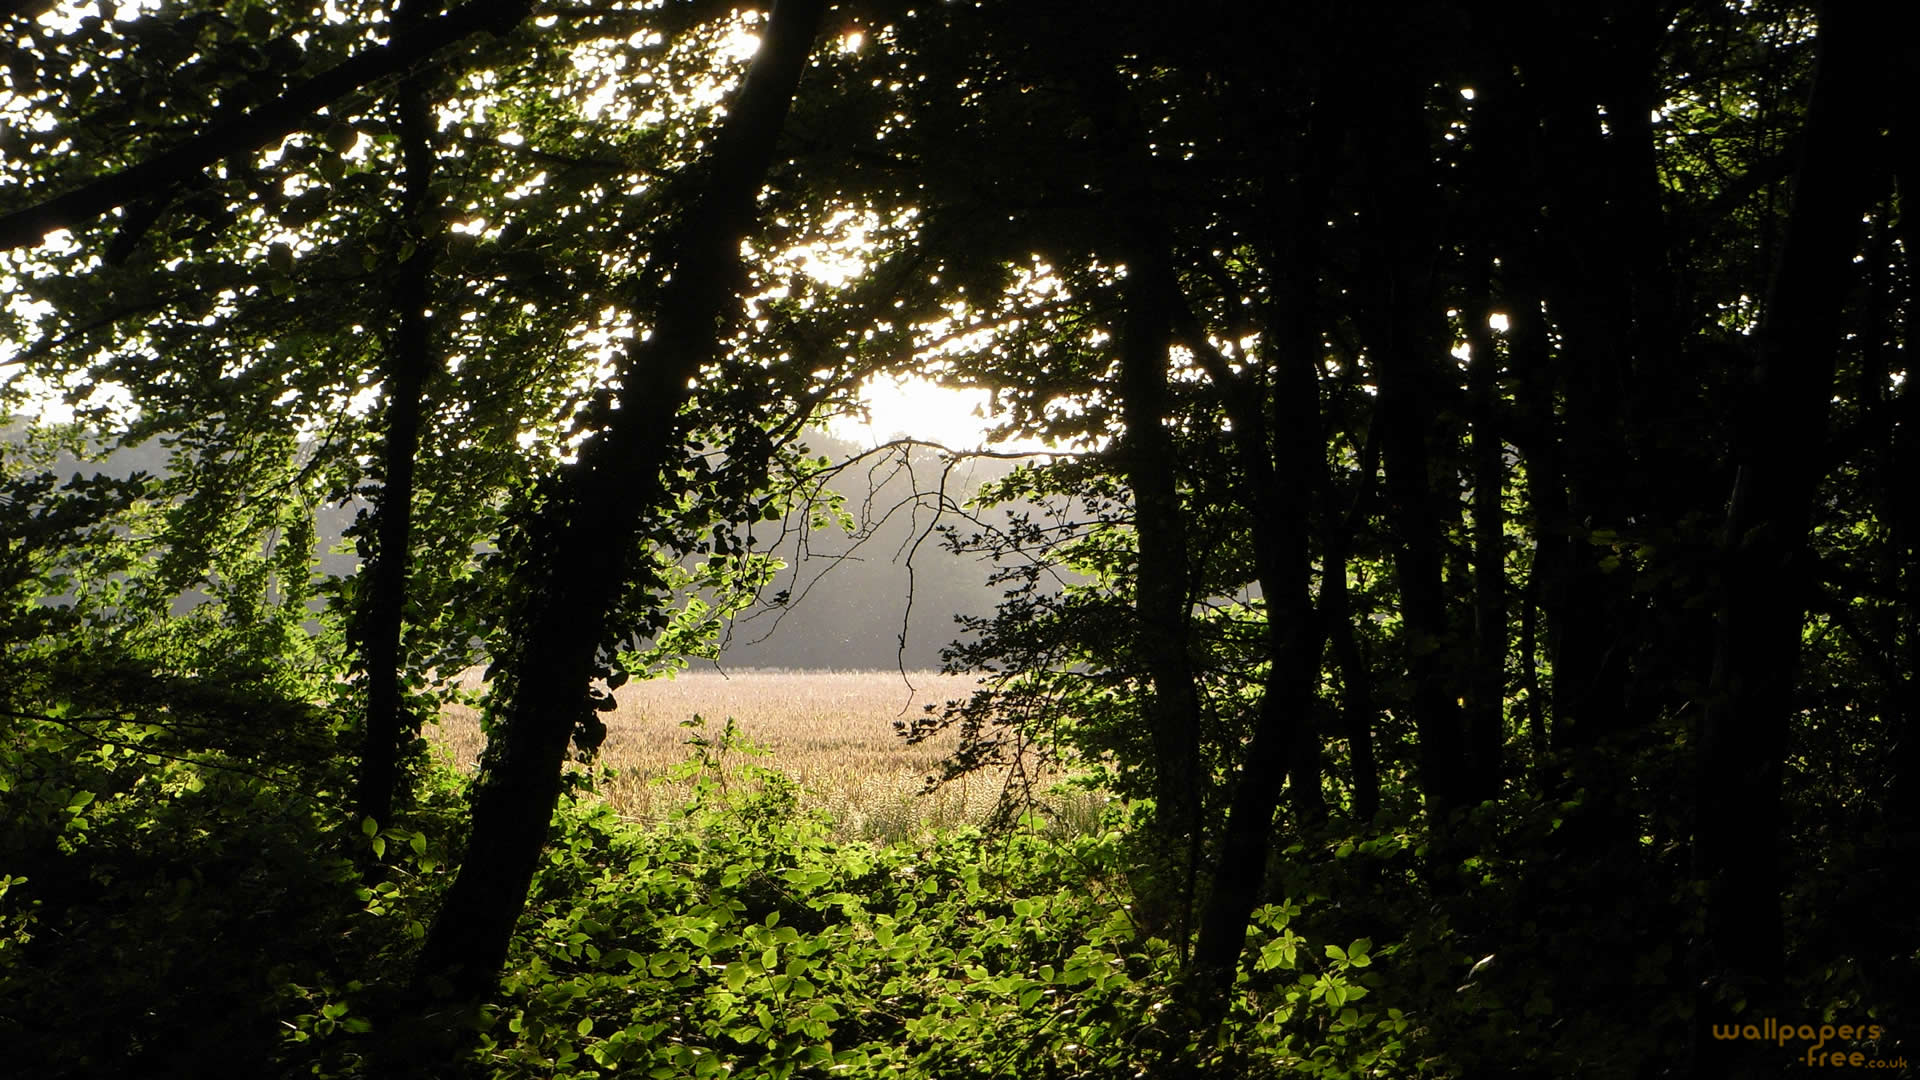 Looking Through The Woodland To The Sunlight